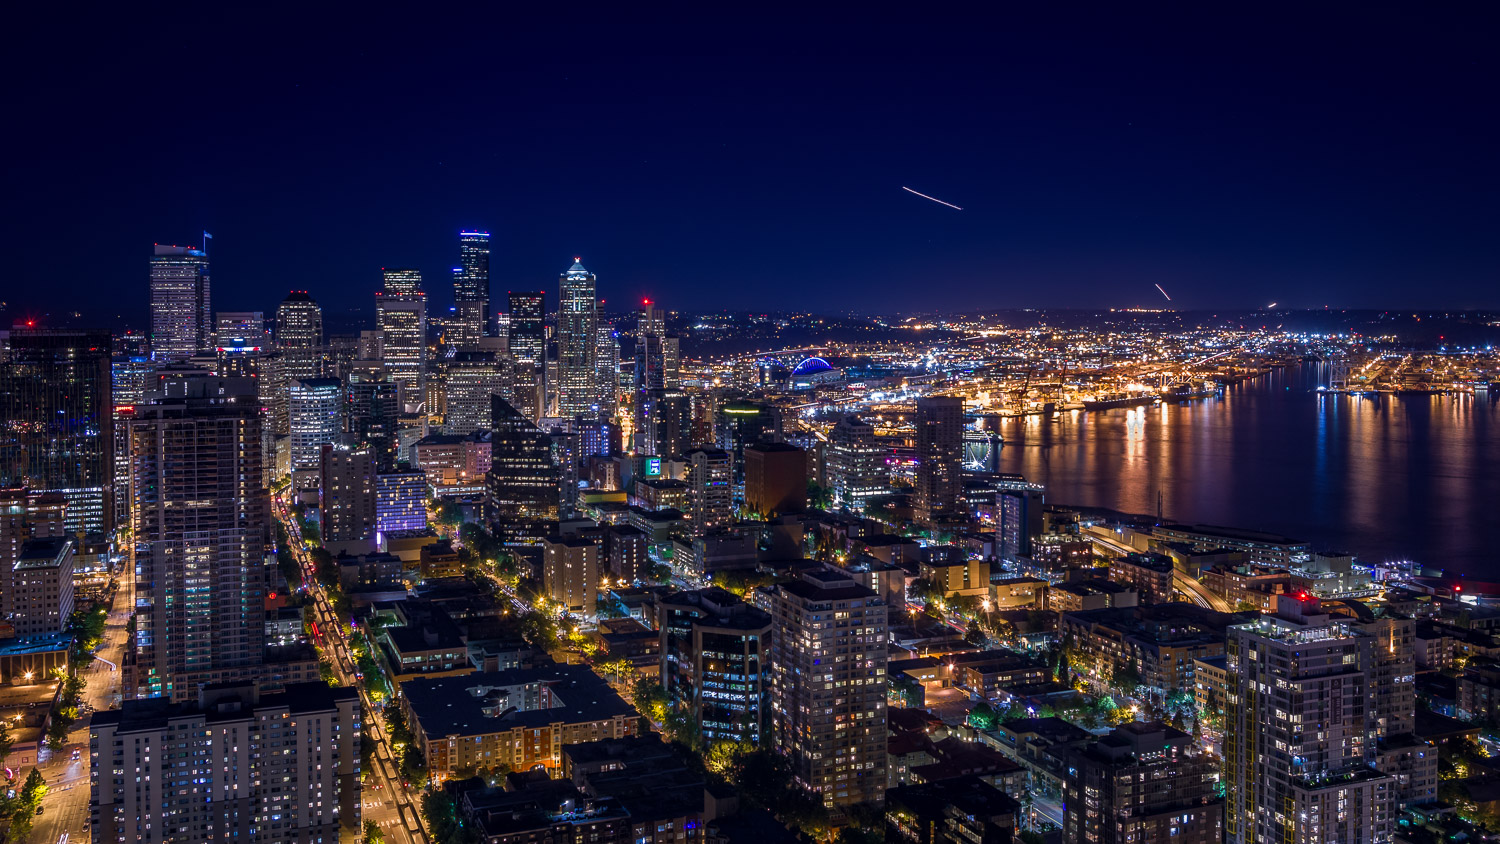 View from the Space Needle, Seattle, WA, June 2015